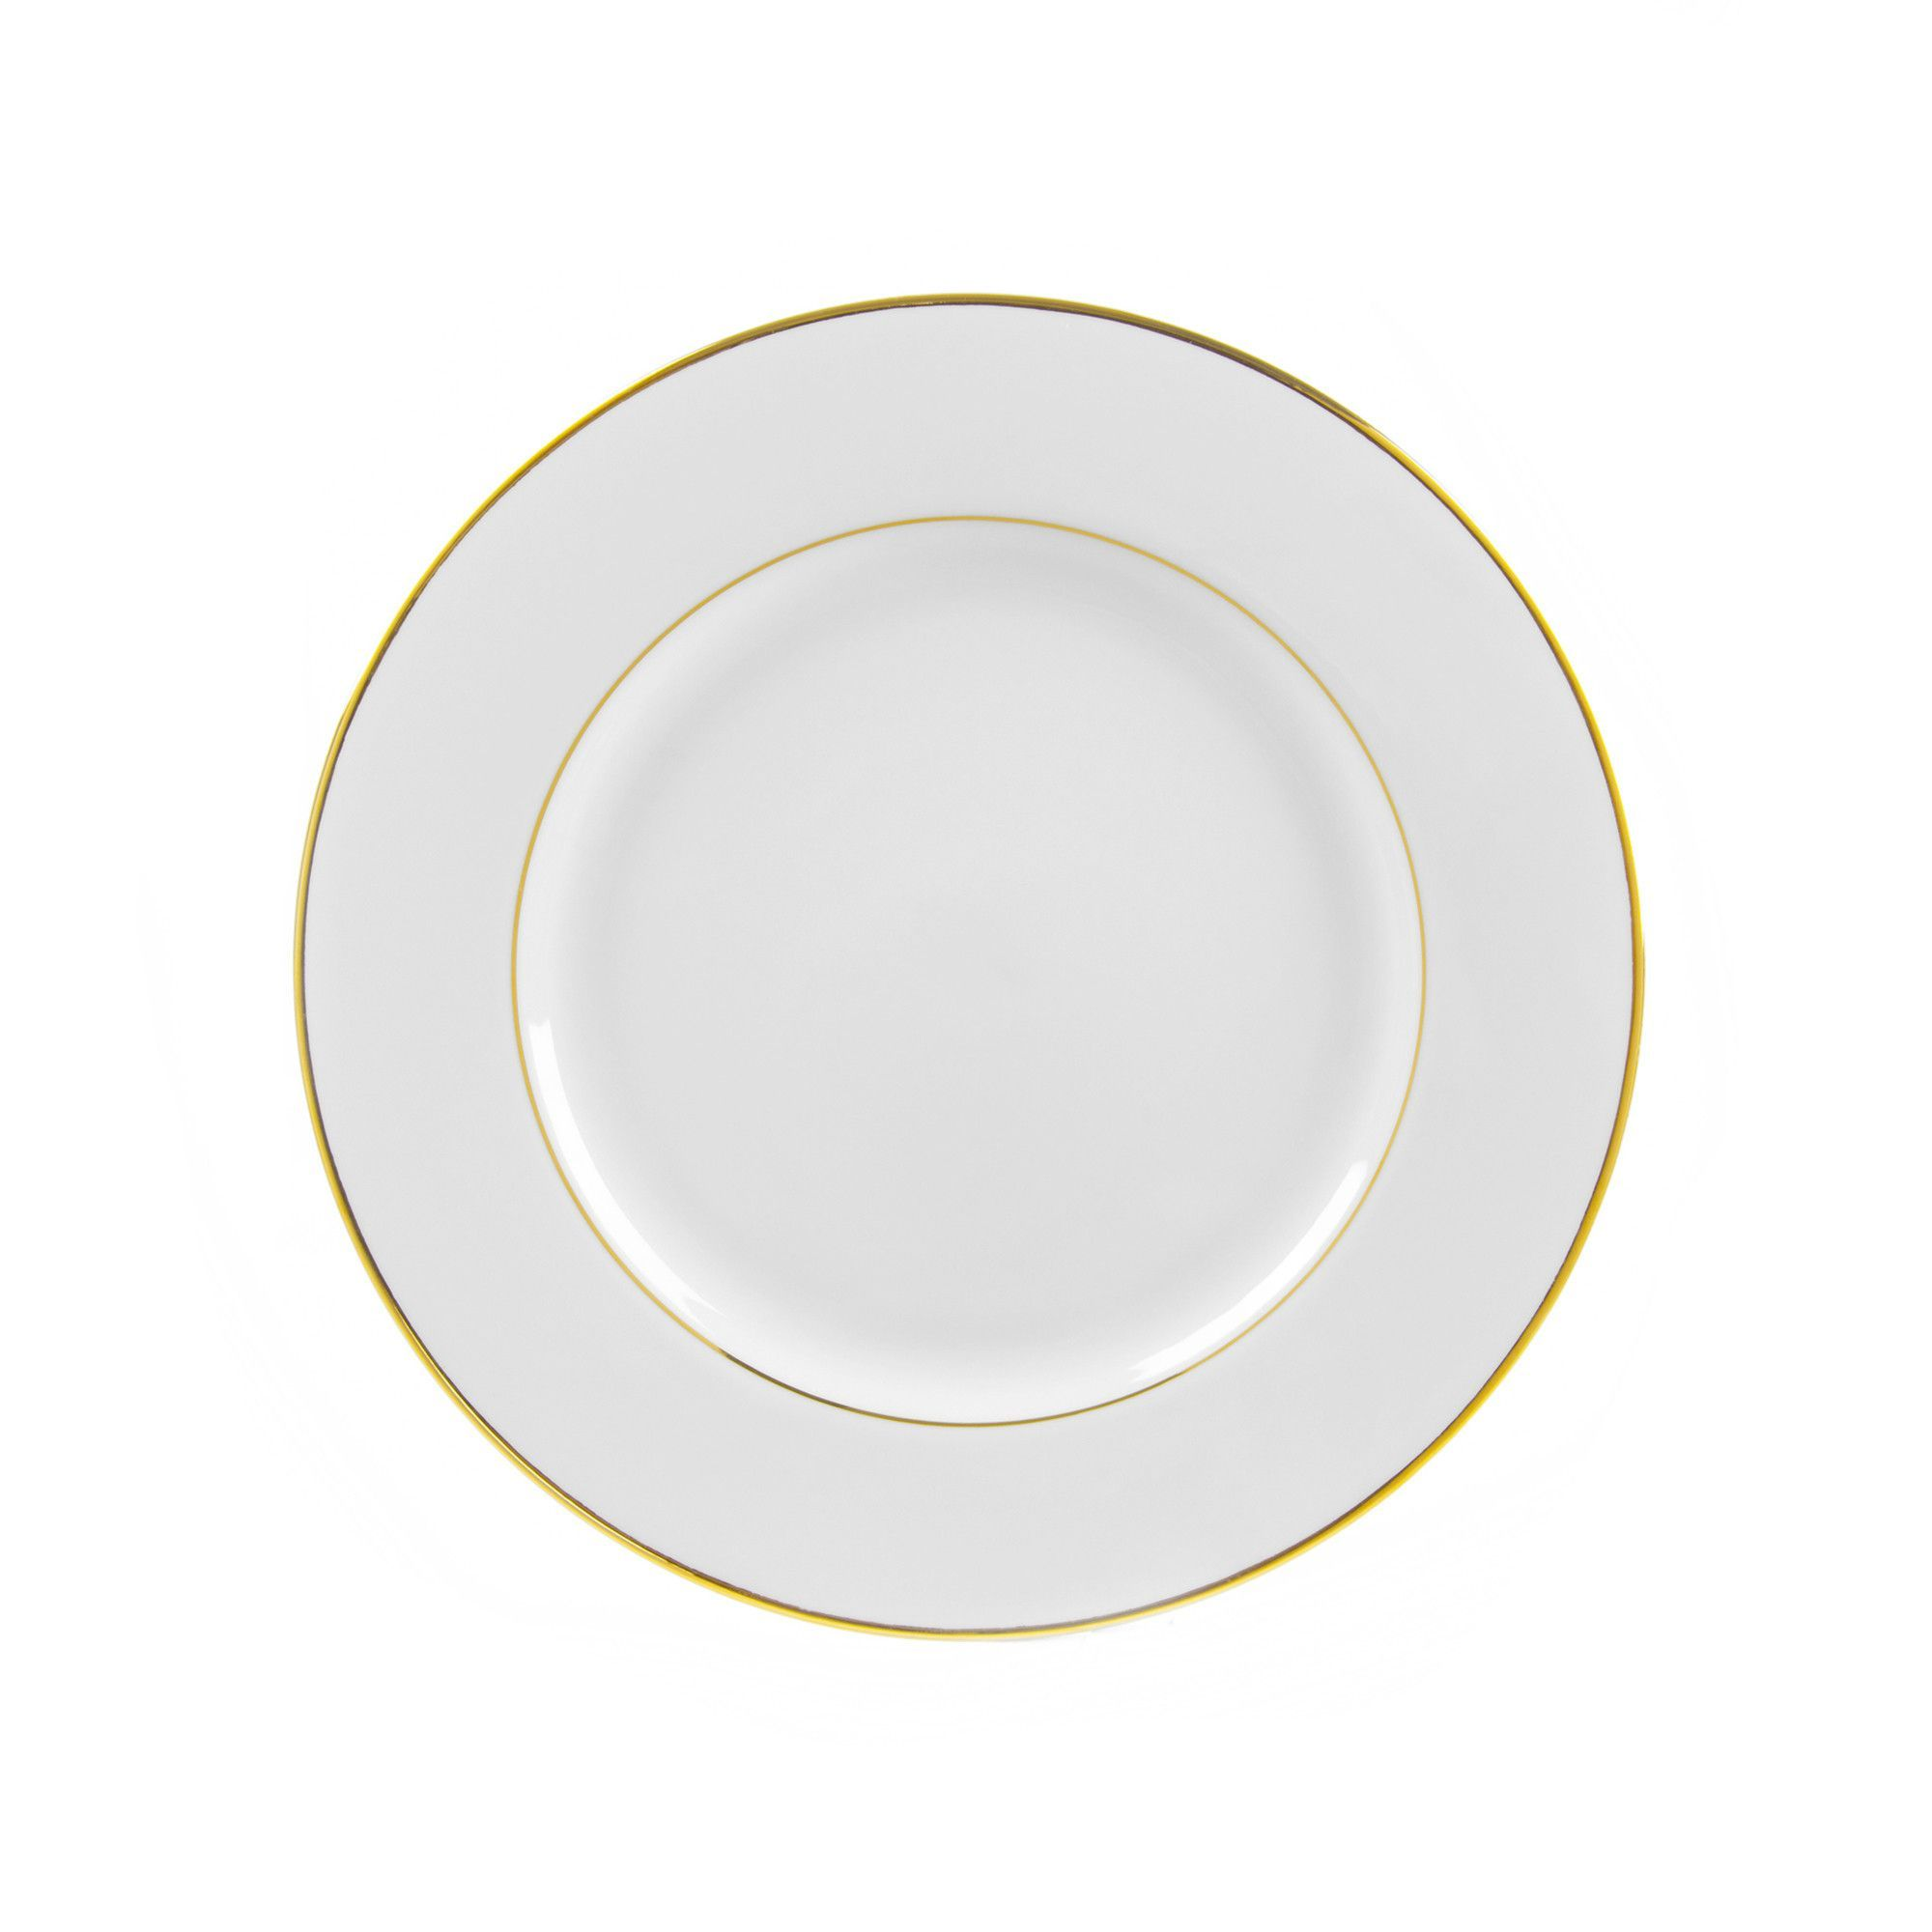 Gold Double Line 9 13 Luncheon Plate Plates 10 Strawberry Street Plate Sets